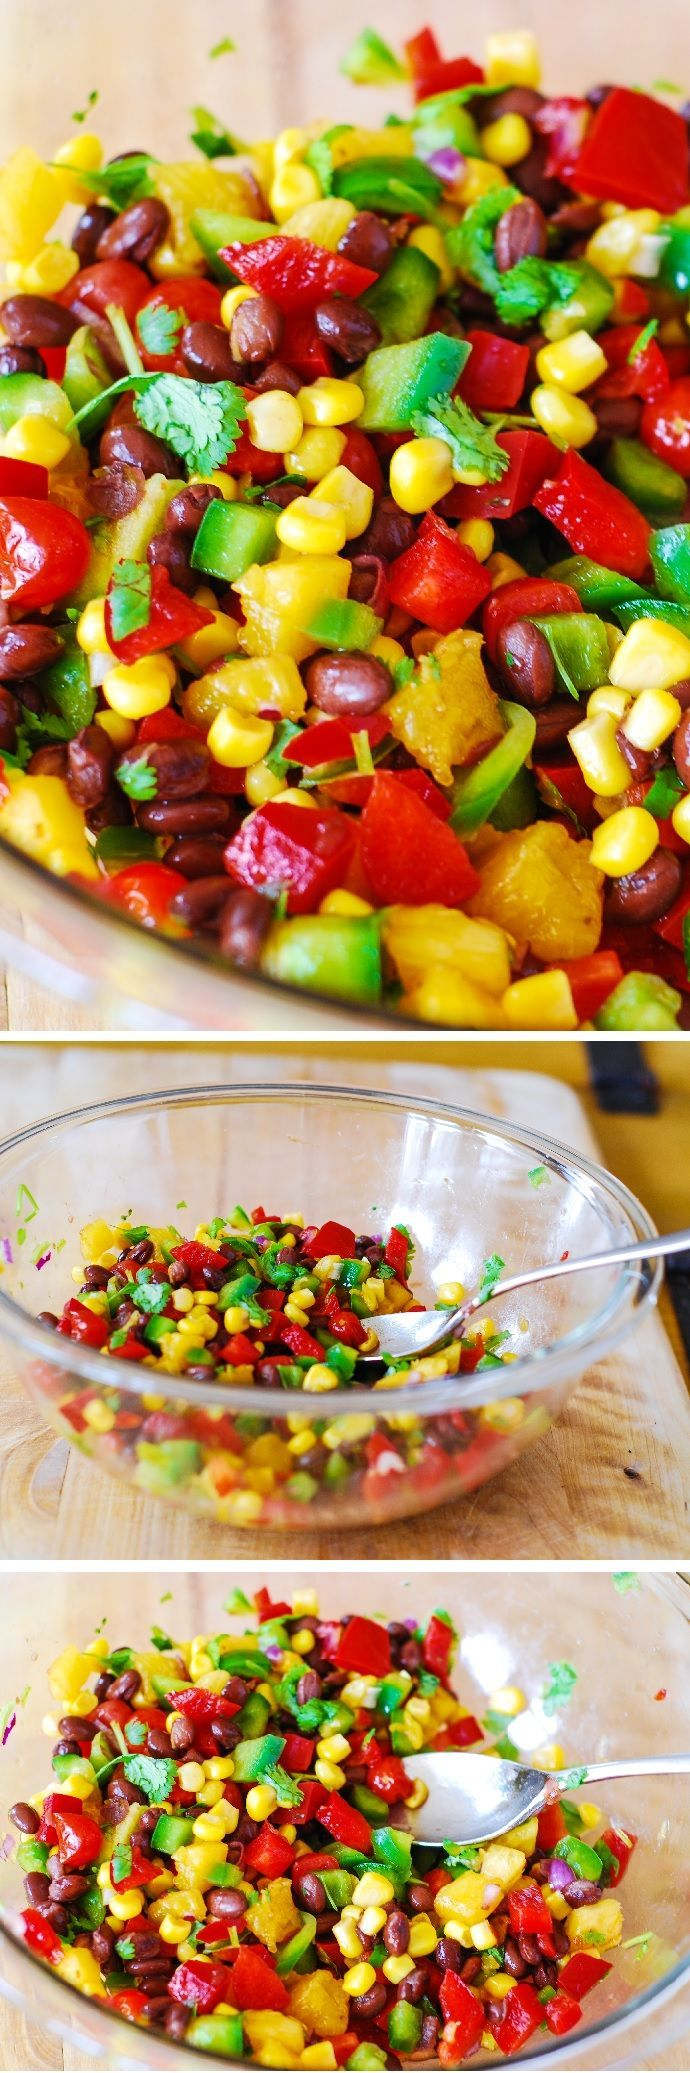 Southwestern Salsa with Black Beans, Bell Peppers, Tomatoes, Corn, and Pineapple